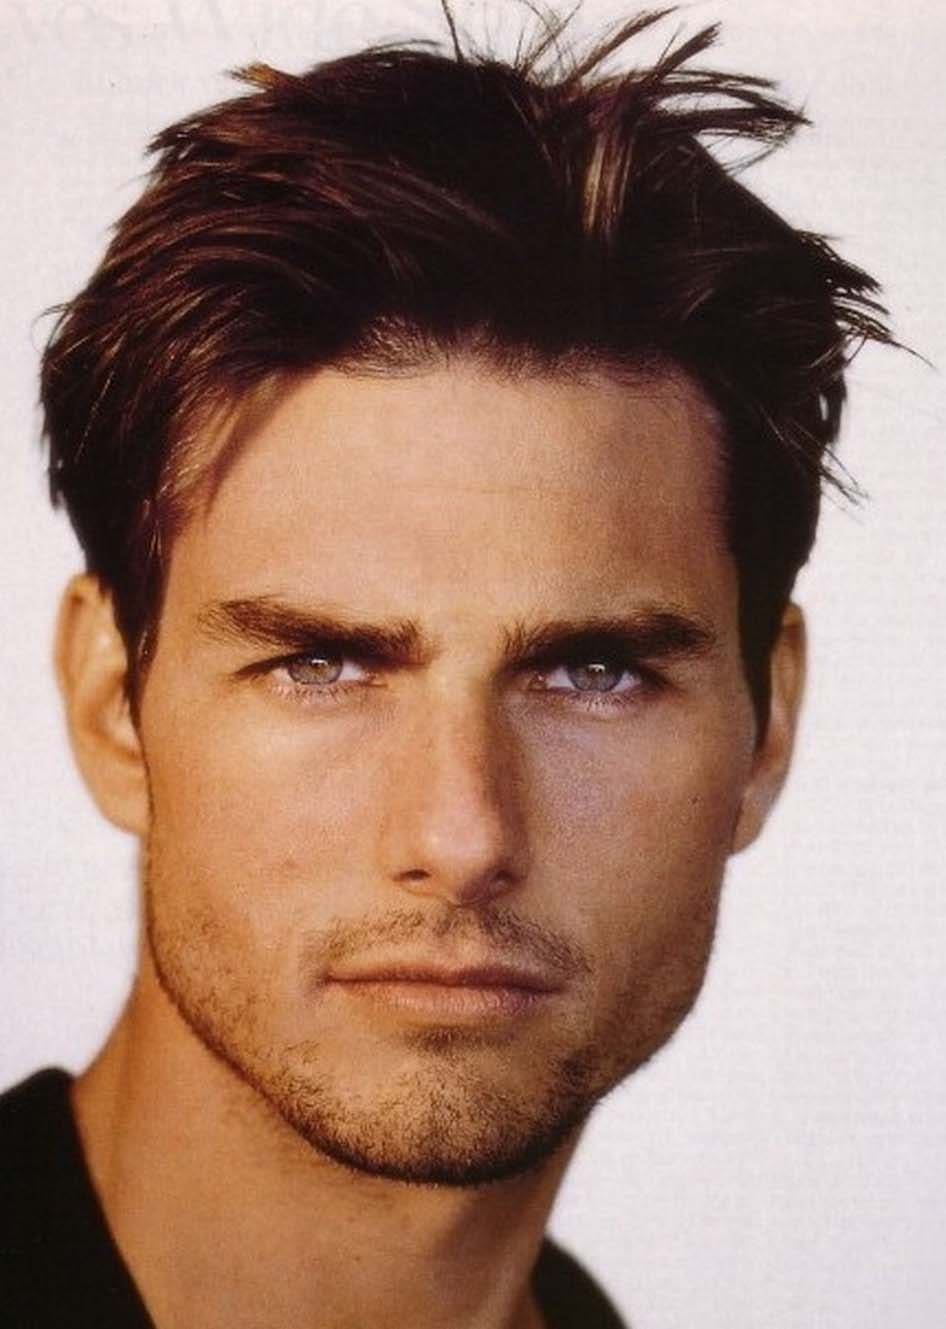 astonishing Celebrity Men Hairstyles 2018 - Men\'s Haircut Styles